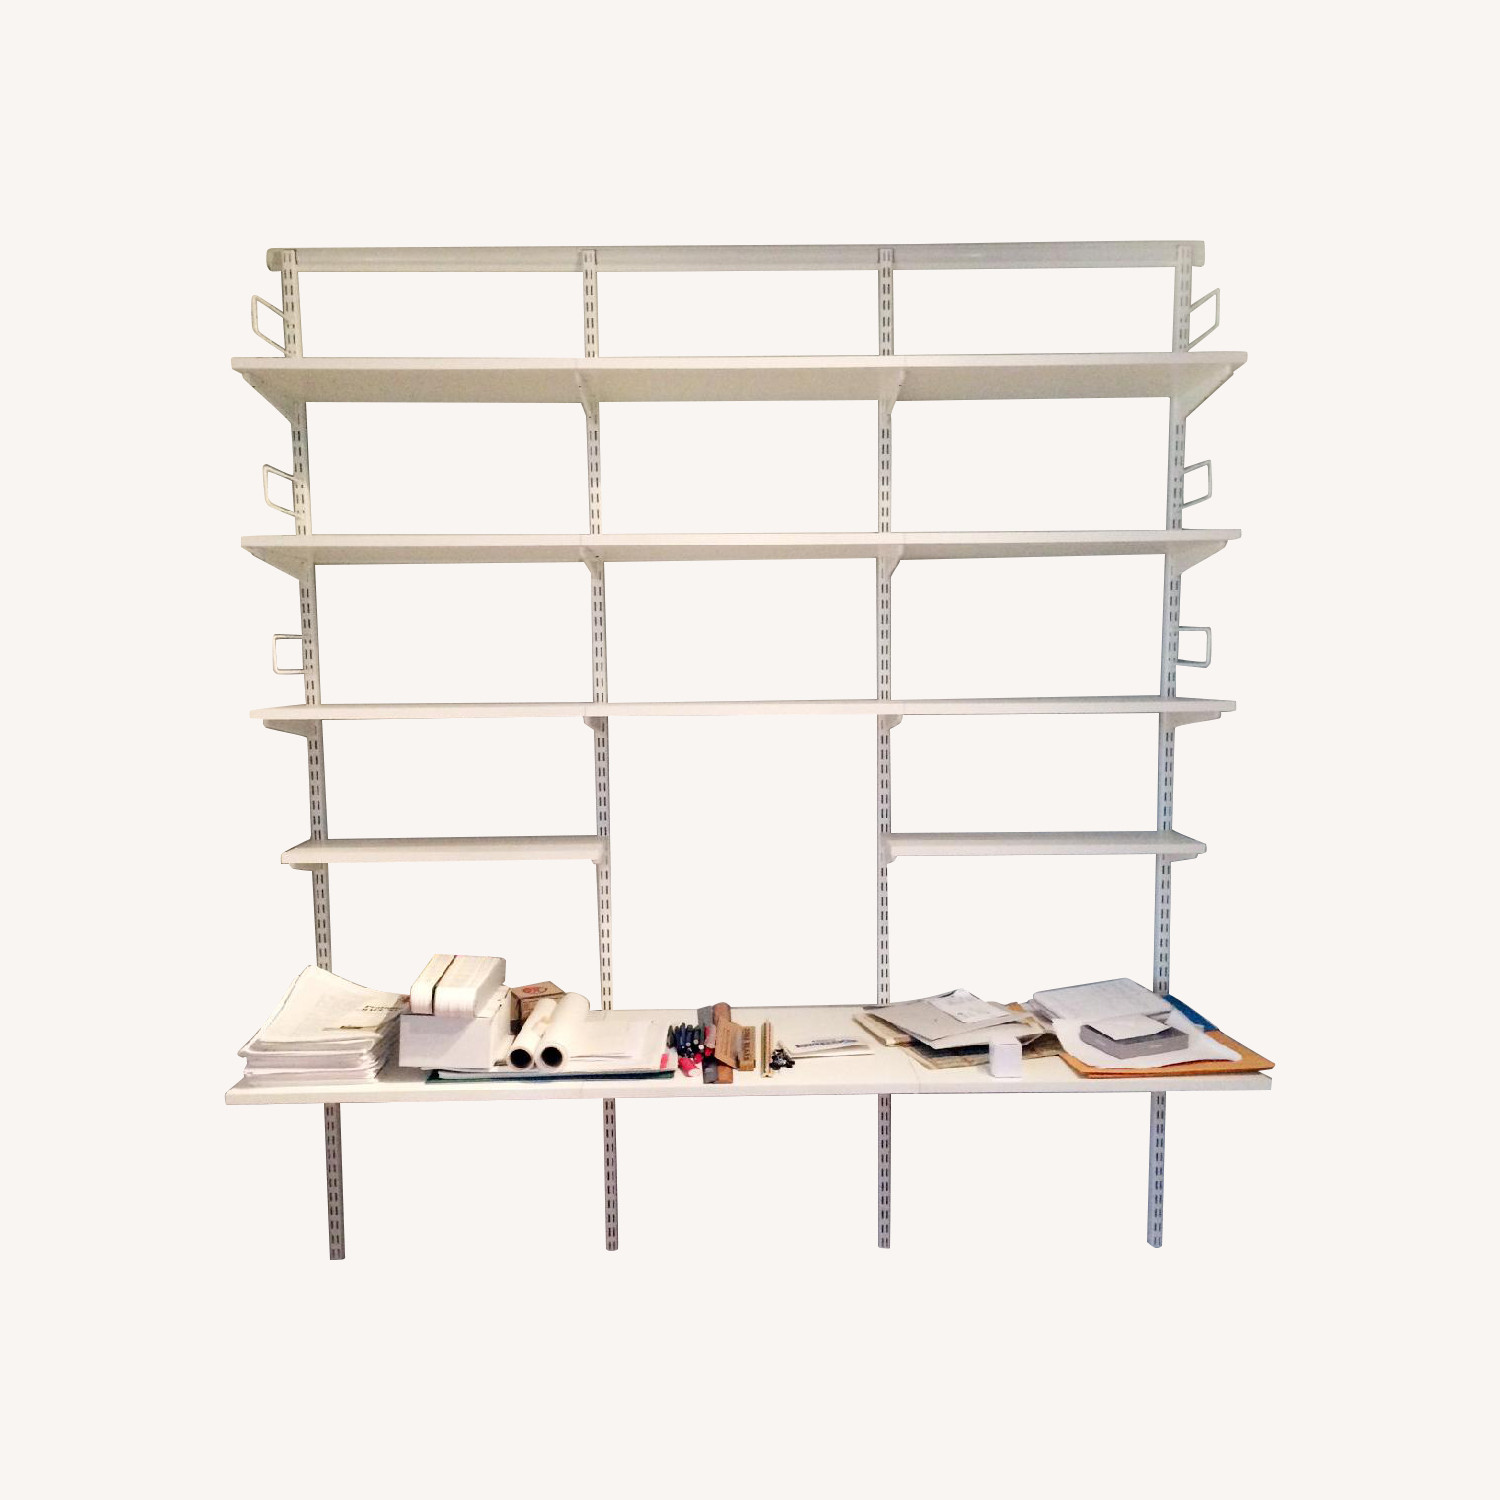 Container Store Elfa Desk and Bookshelf Components